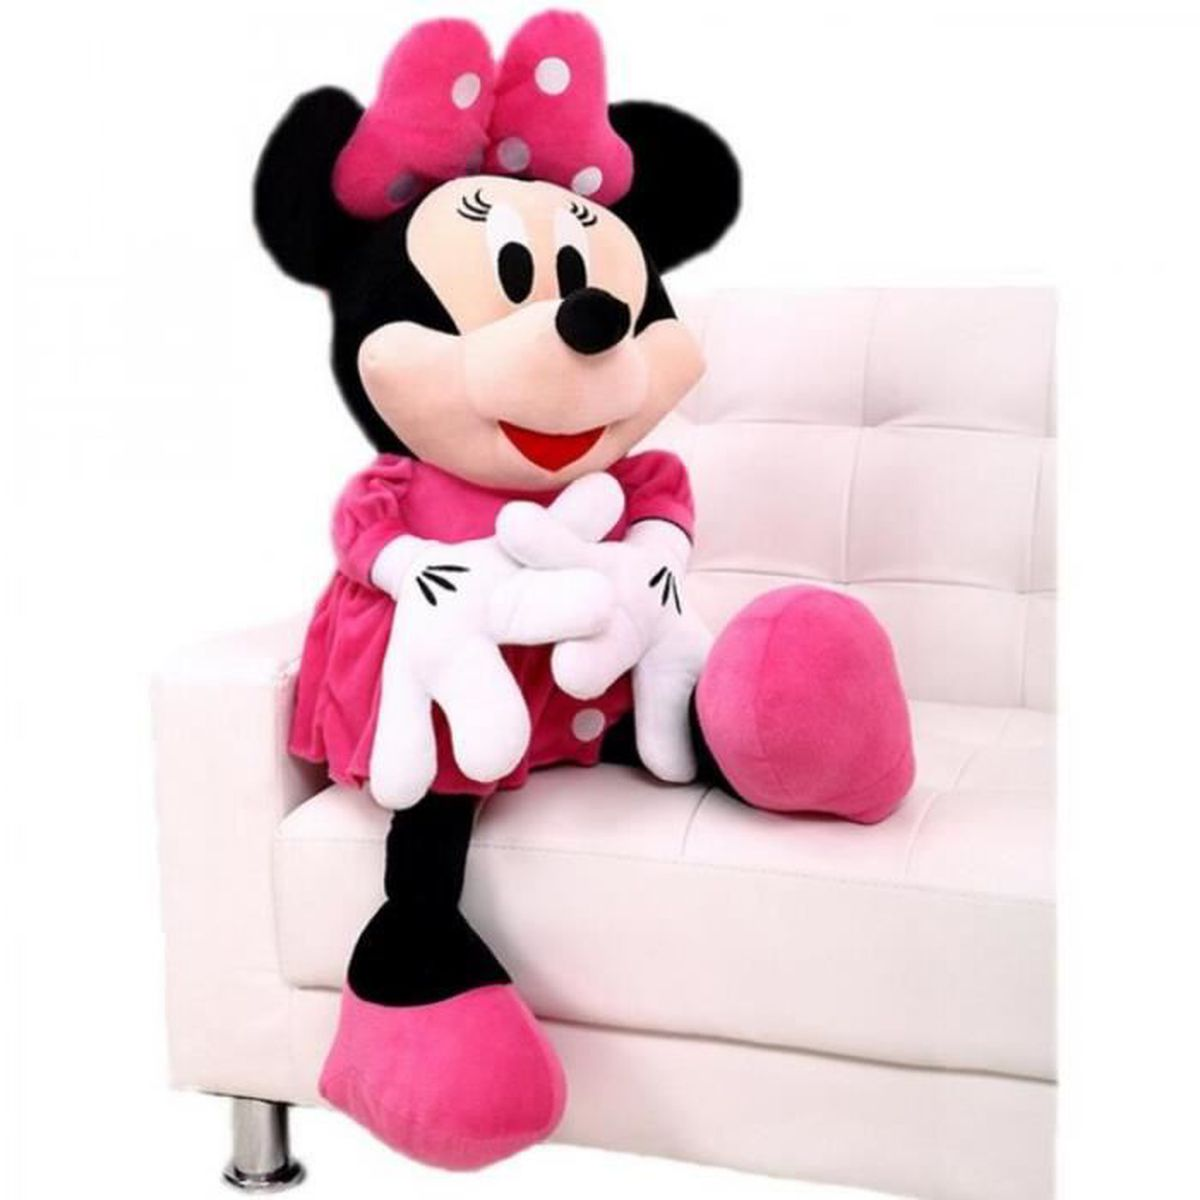 grande peluche mickey achat vente jeux et jouets pas chers. Black Bedroom Furniture Sets. Home Design Ideas